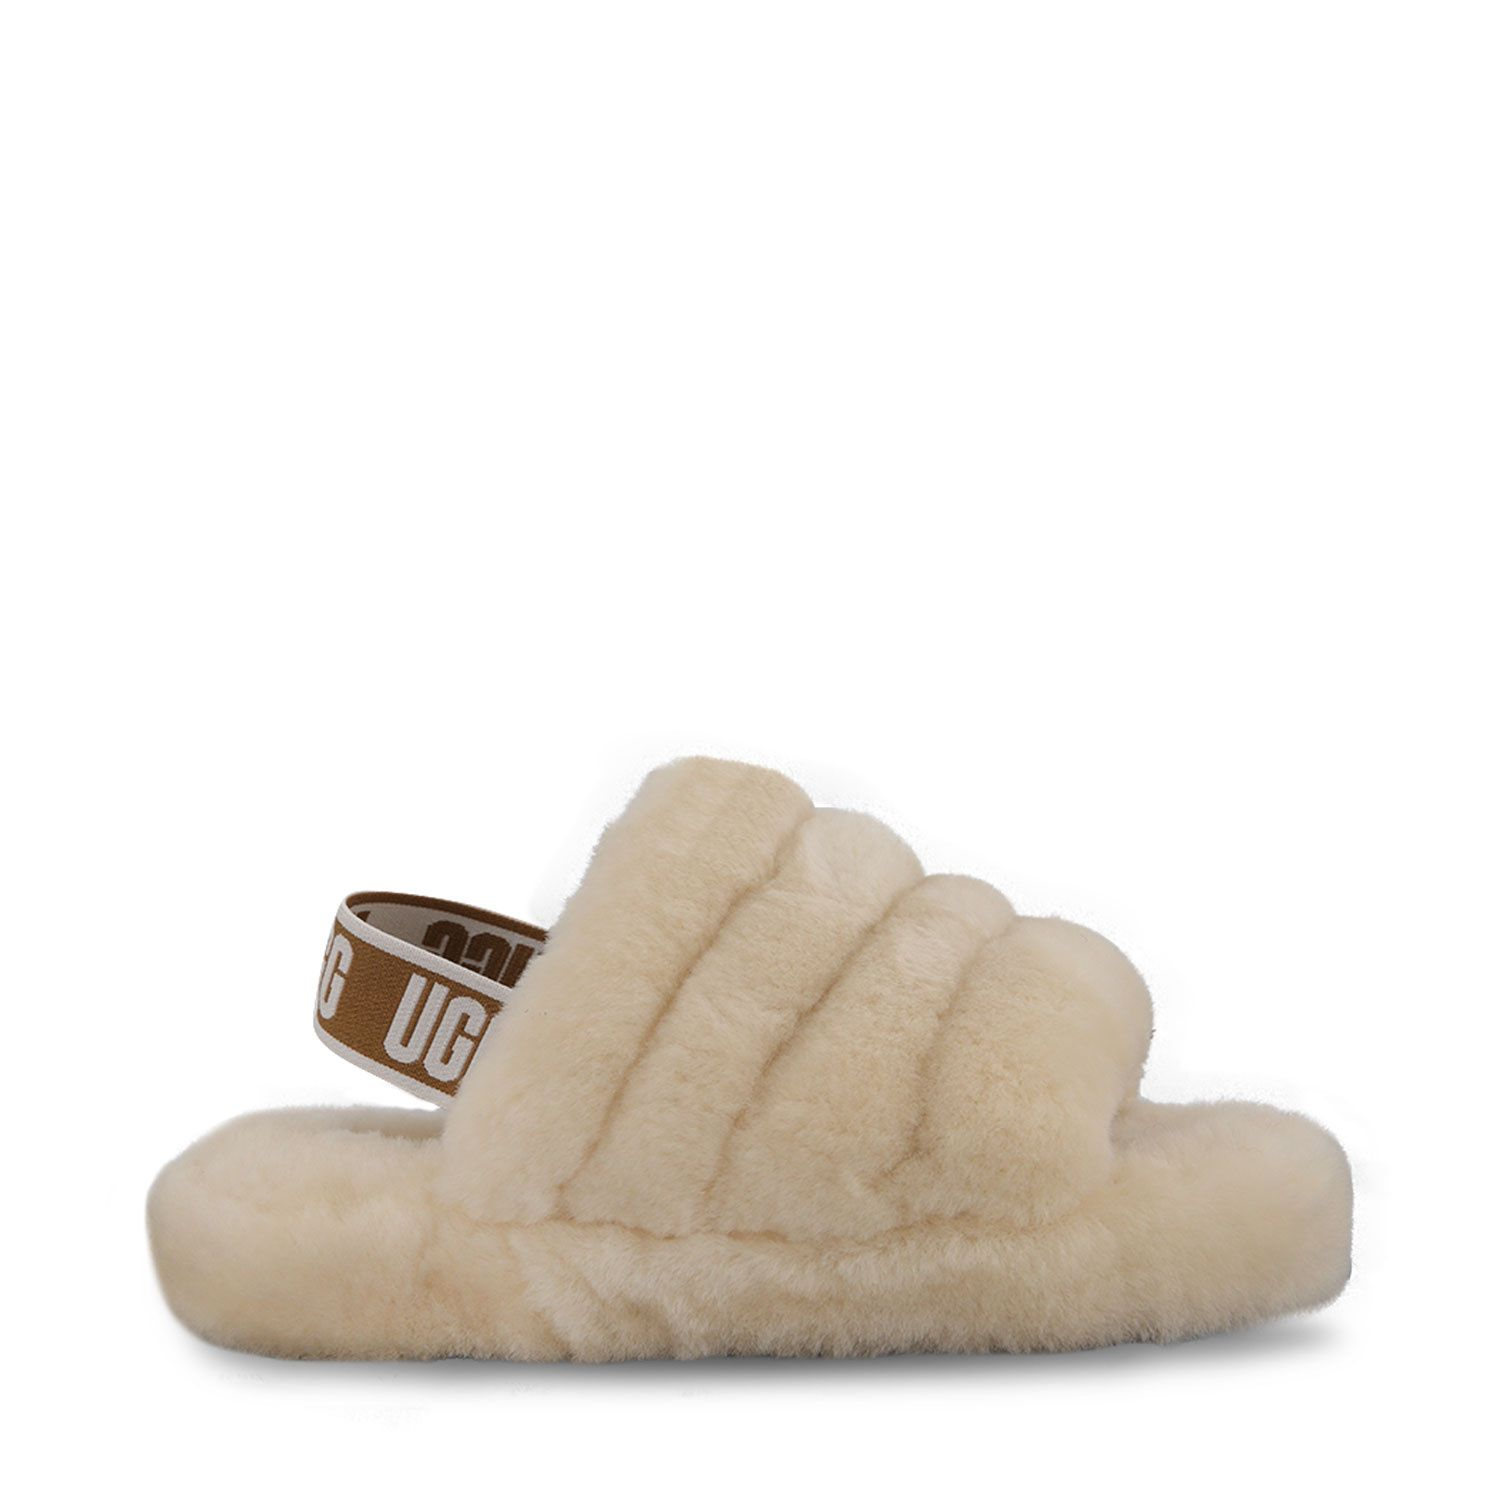 Picture of Ugg 1098494 kids slippers pink